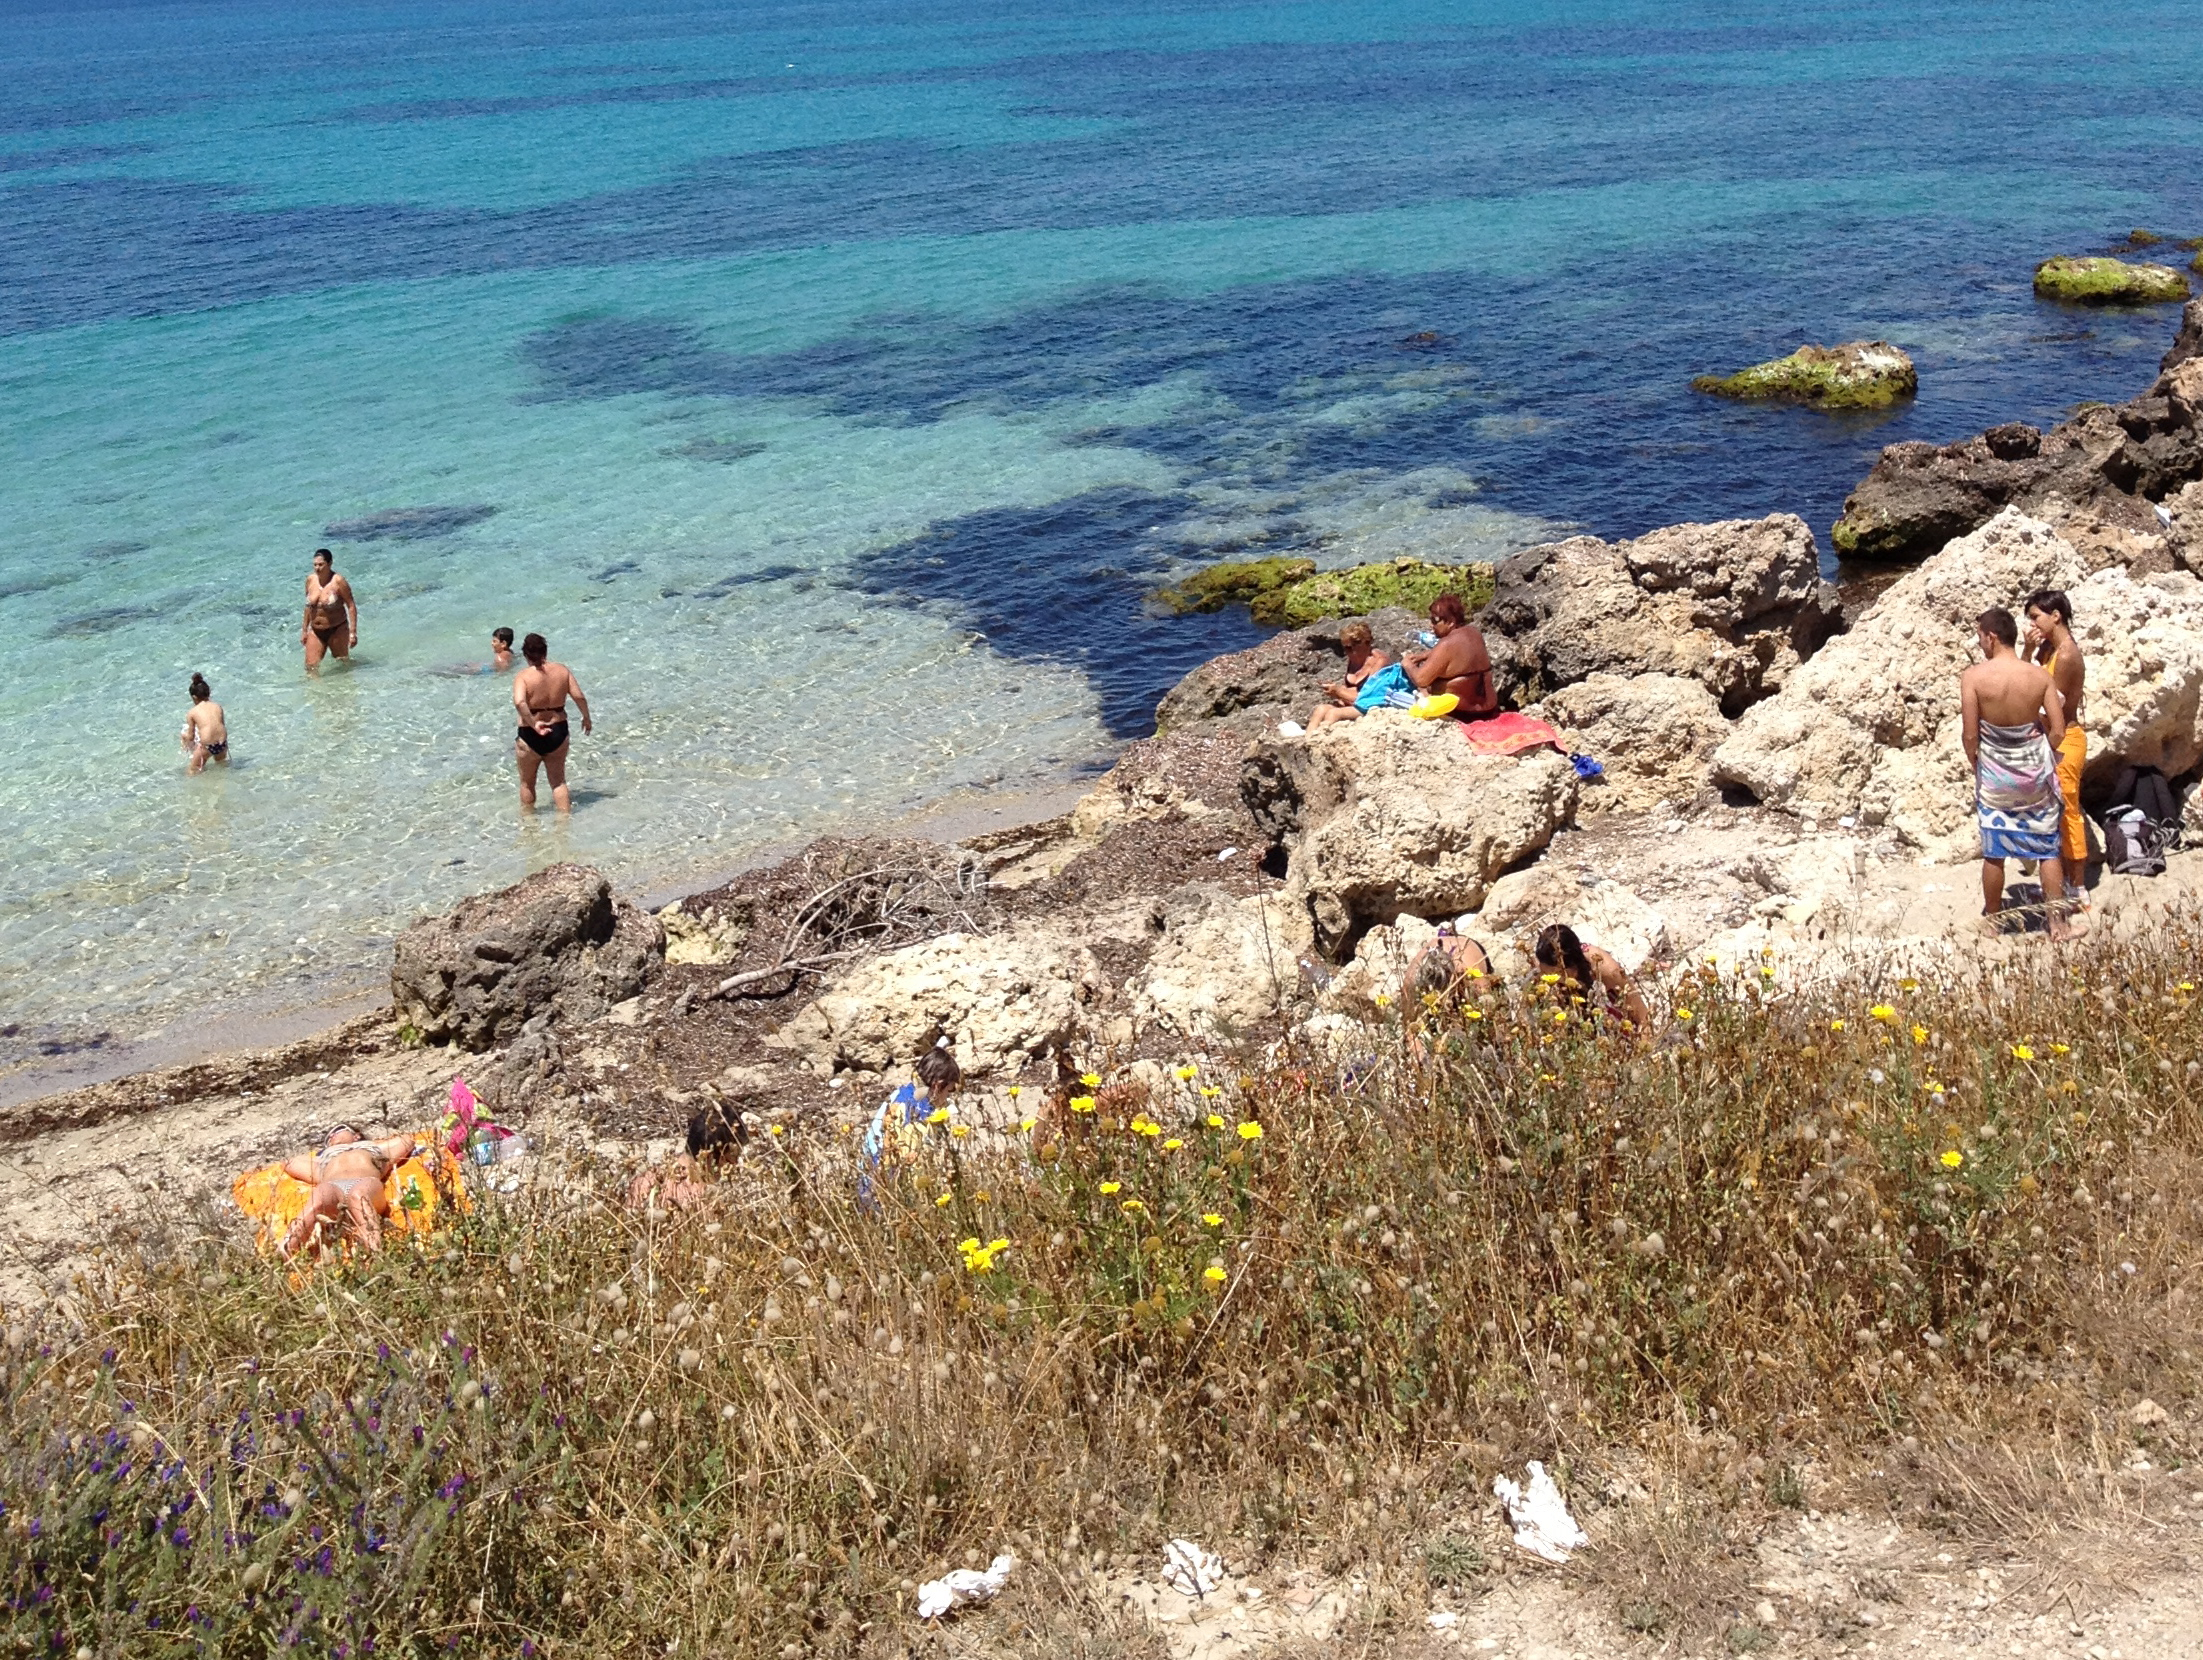 Taranto Italy  City pictures : Taranto: Italy's Worst Tourist Destination | Garrett On The Road